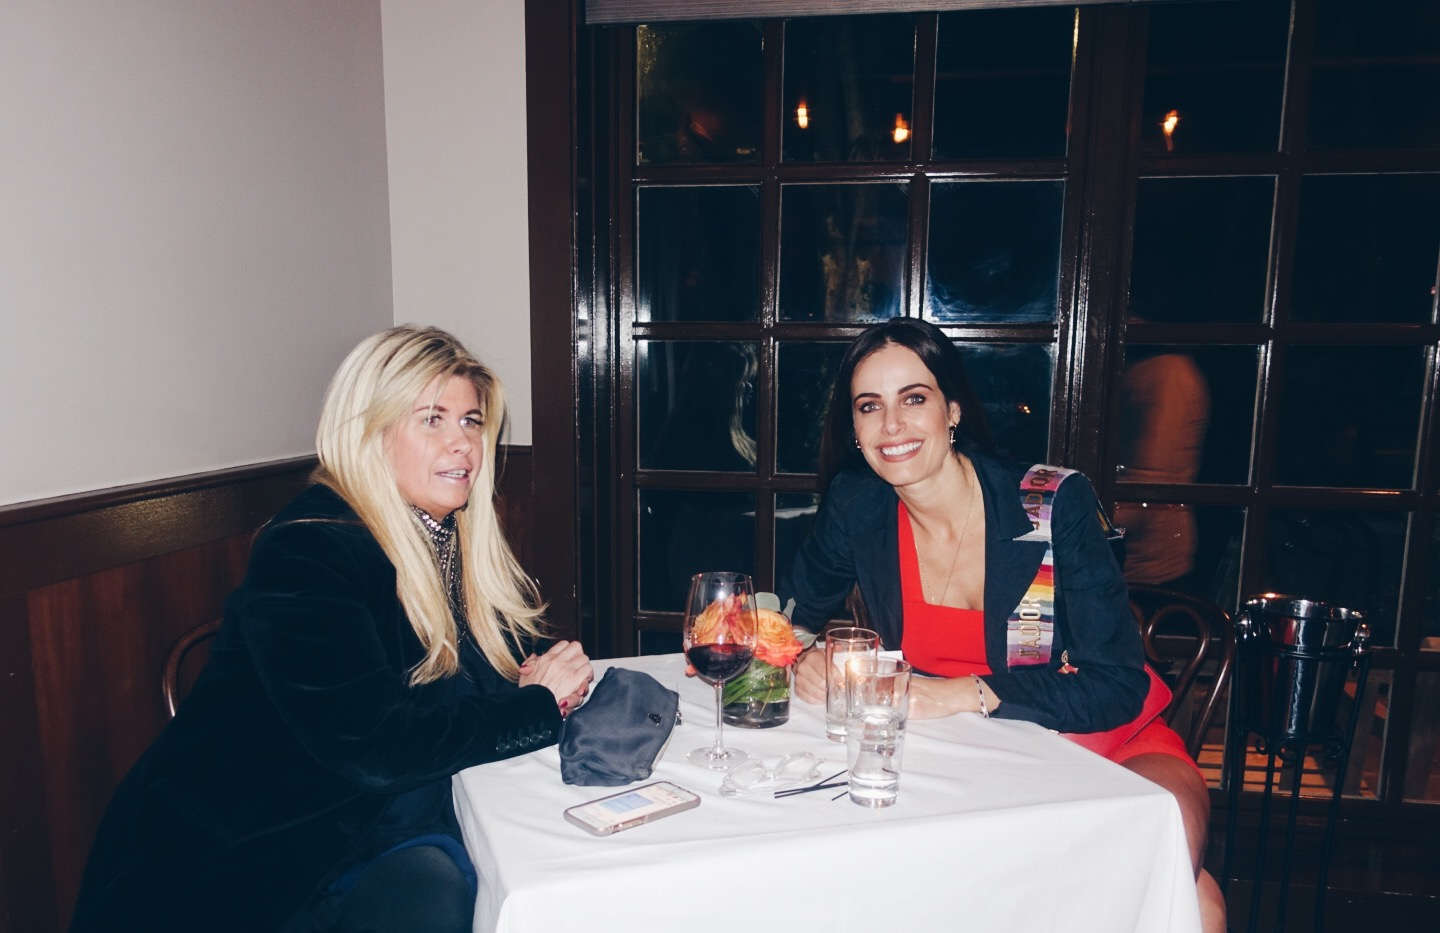 GDF's mission awareness + wine tasting event at Lugano Wine Bar in Greenwich CT.